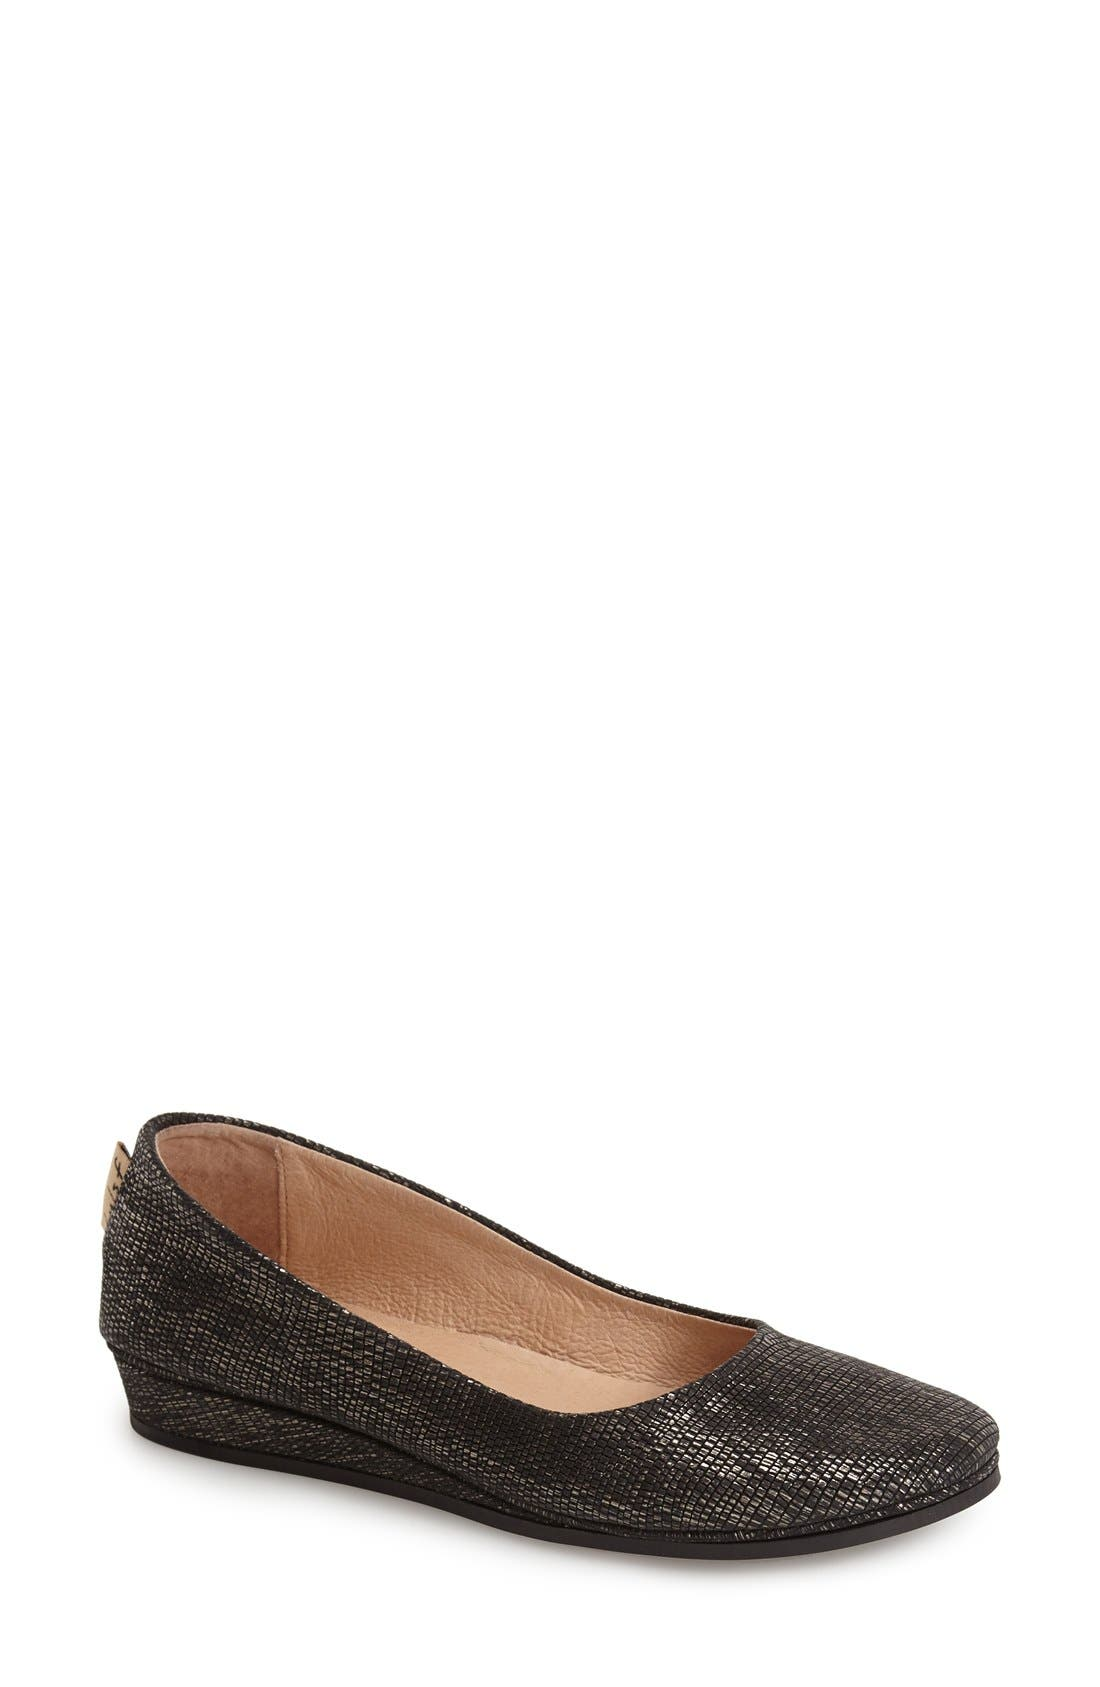 FRENCH SOLE 'Zeppa' Wedge